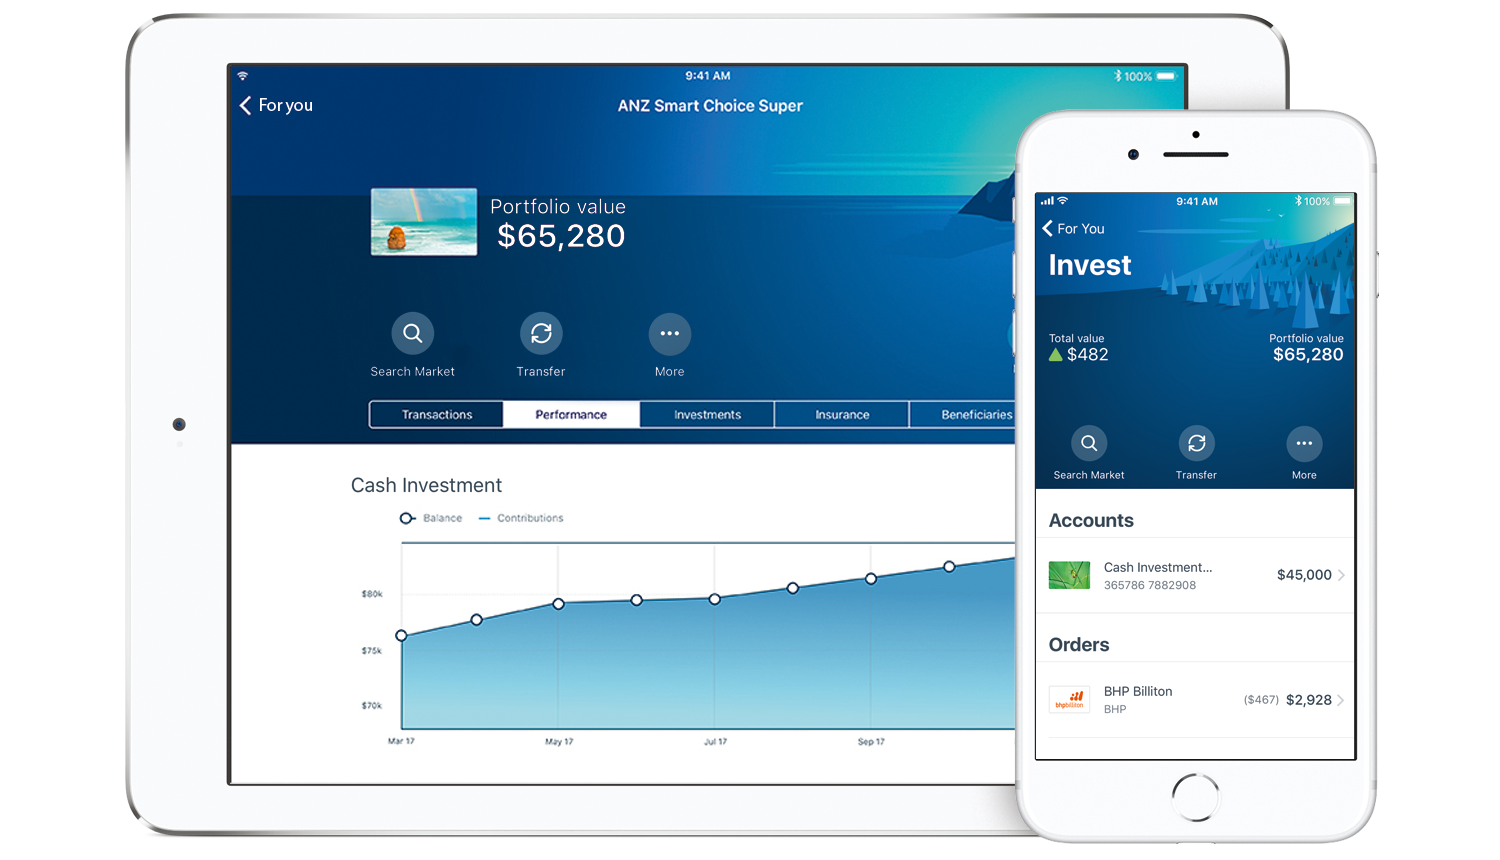 Anz png internet banking. Start trading with confidence